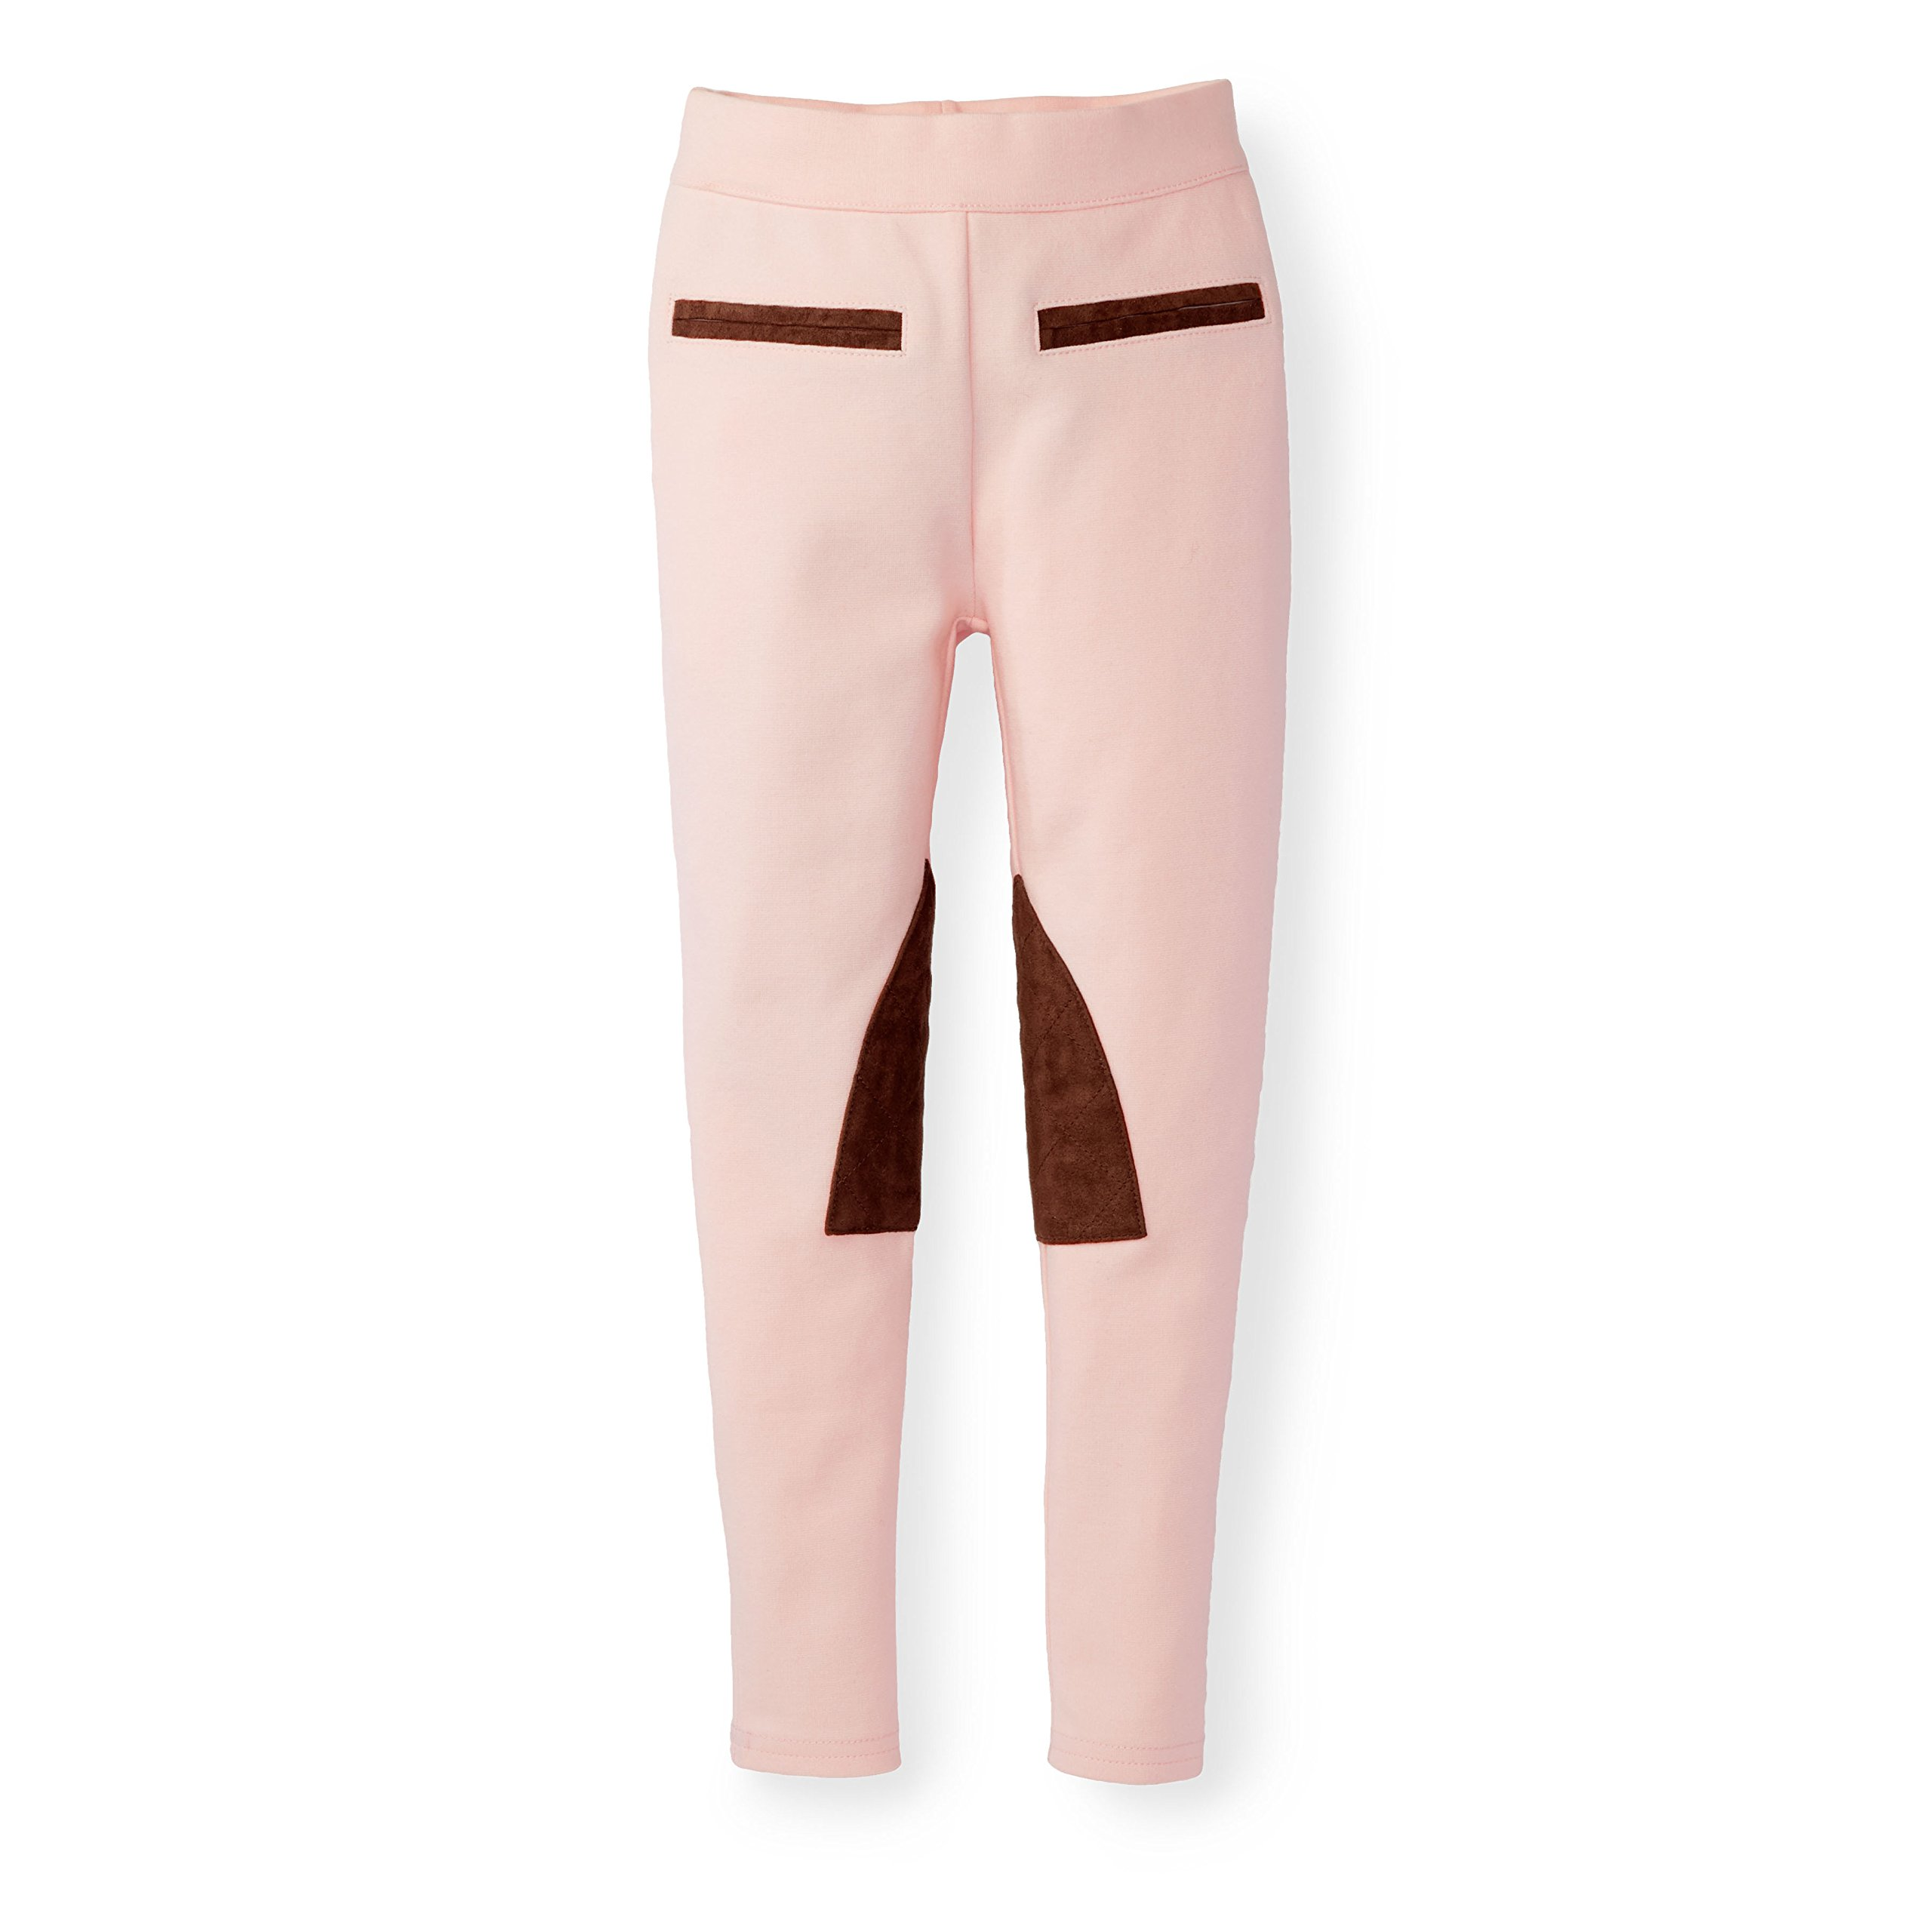 Hope & Henry Girls' Pink Ponte Riding Pants Made with Organic Cotton